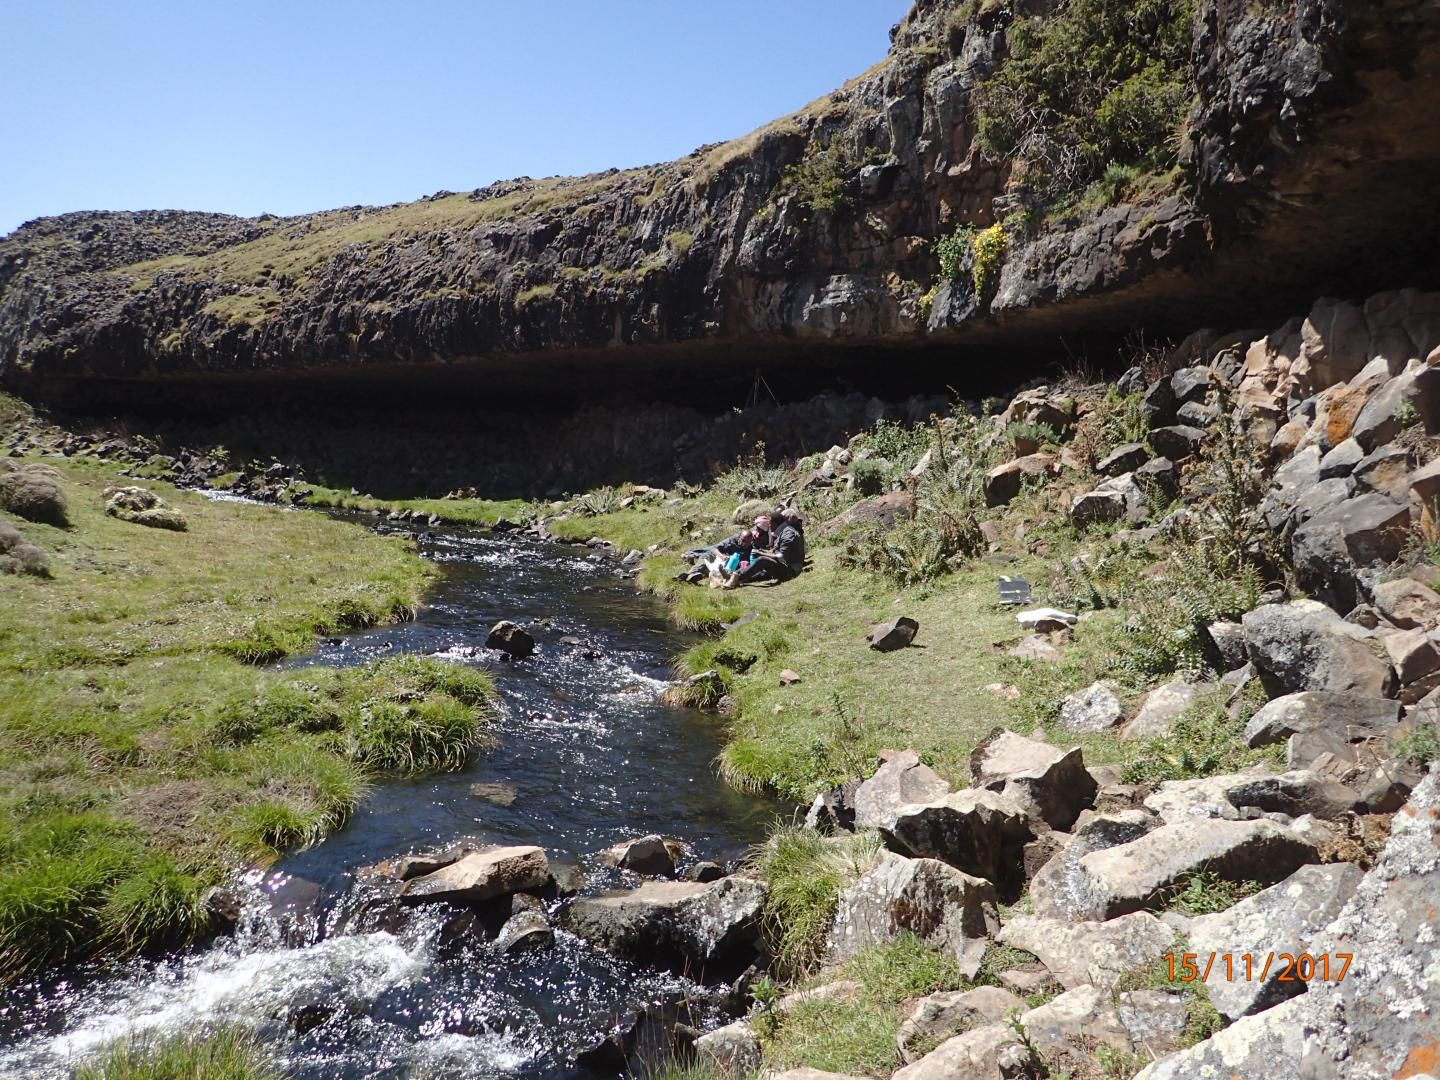 Archaeologists Uncover Evidence of an Ancient High-Altitude Human Dwelling